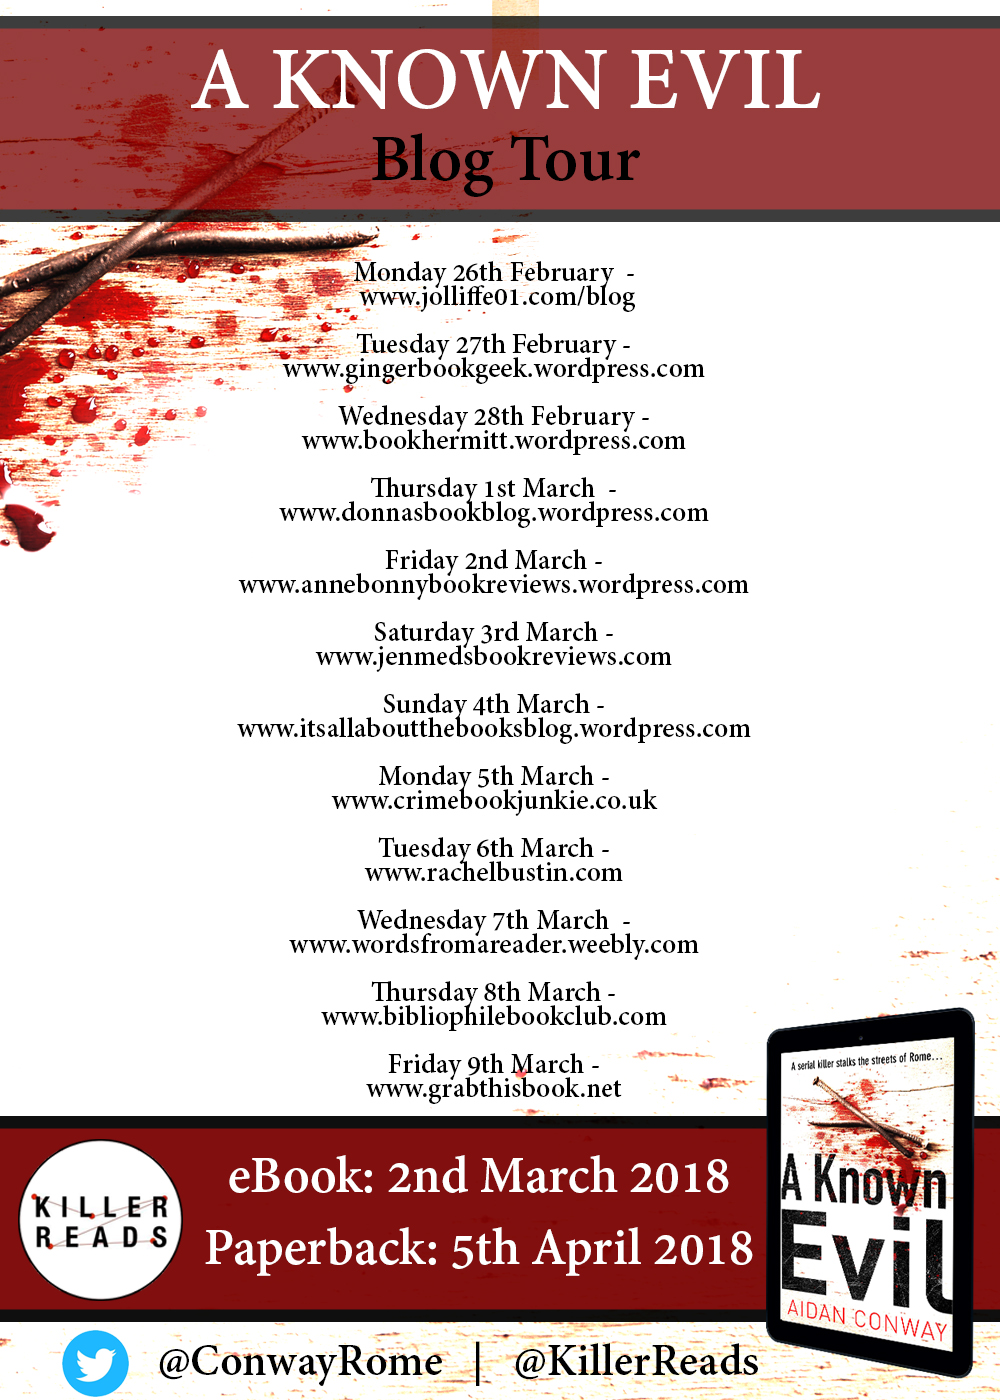 Blog Tour - A Known Evil.jpg